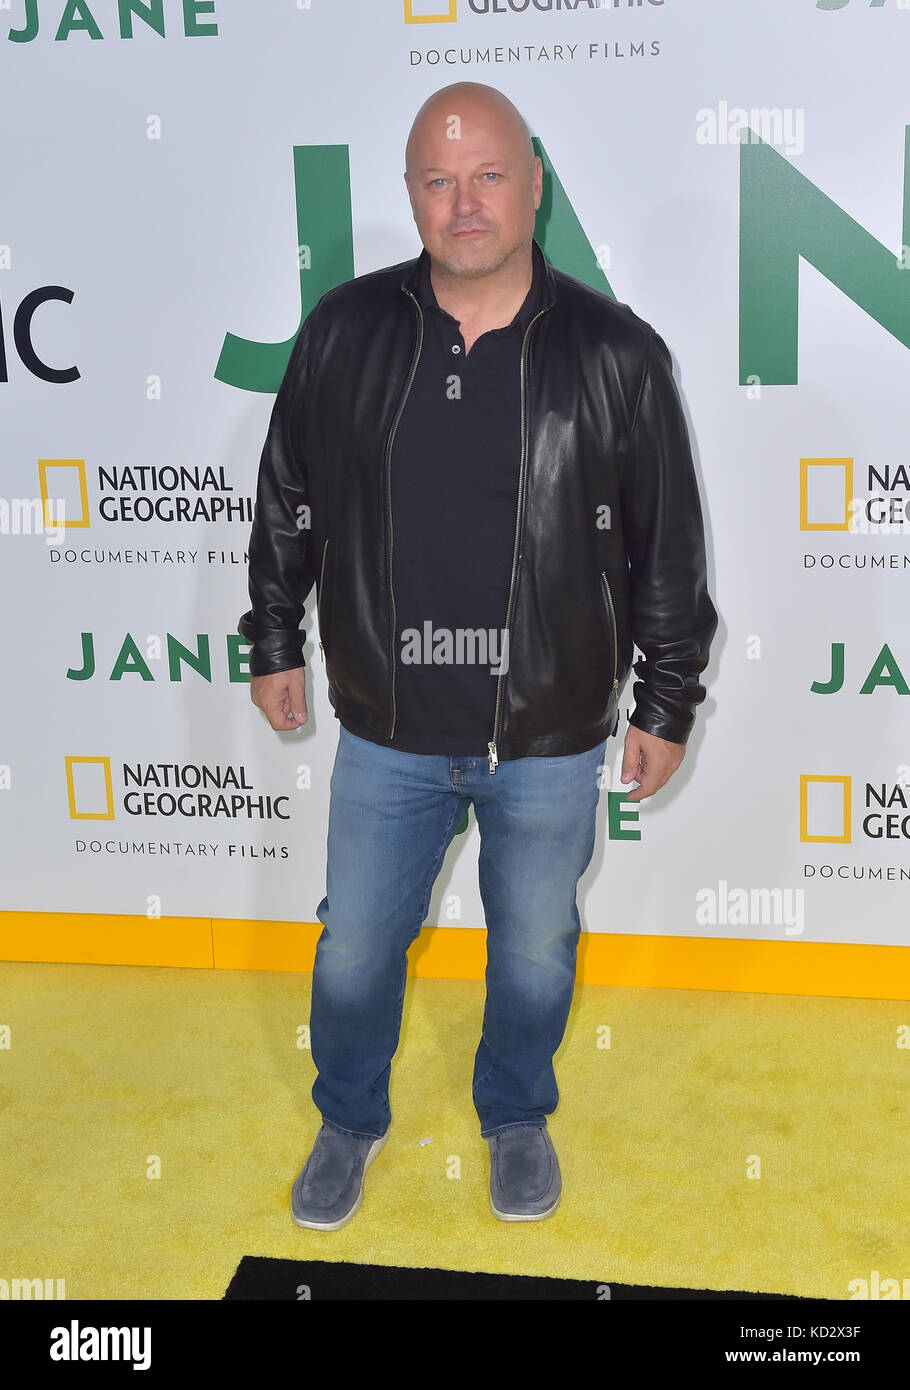 Michael Chiklis Stock Photos & Michael Chiklis Stock Images - Page 2 ...